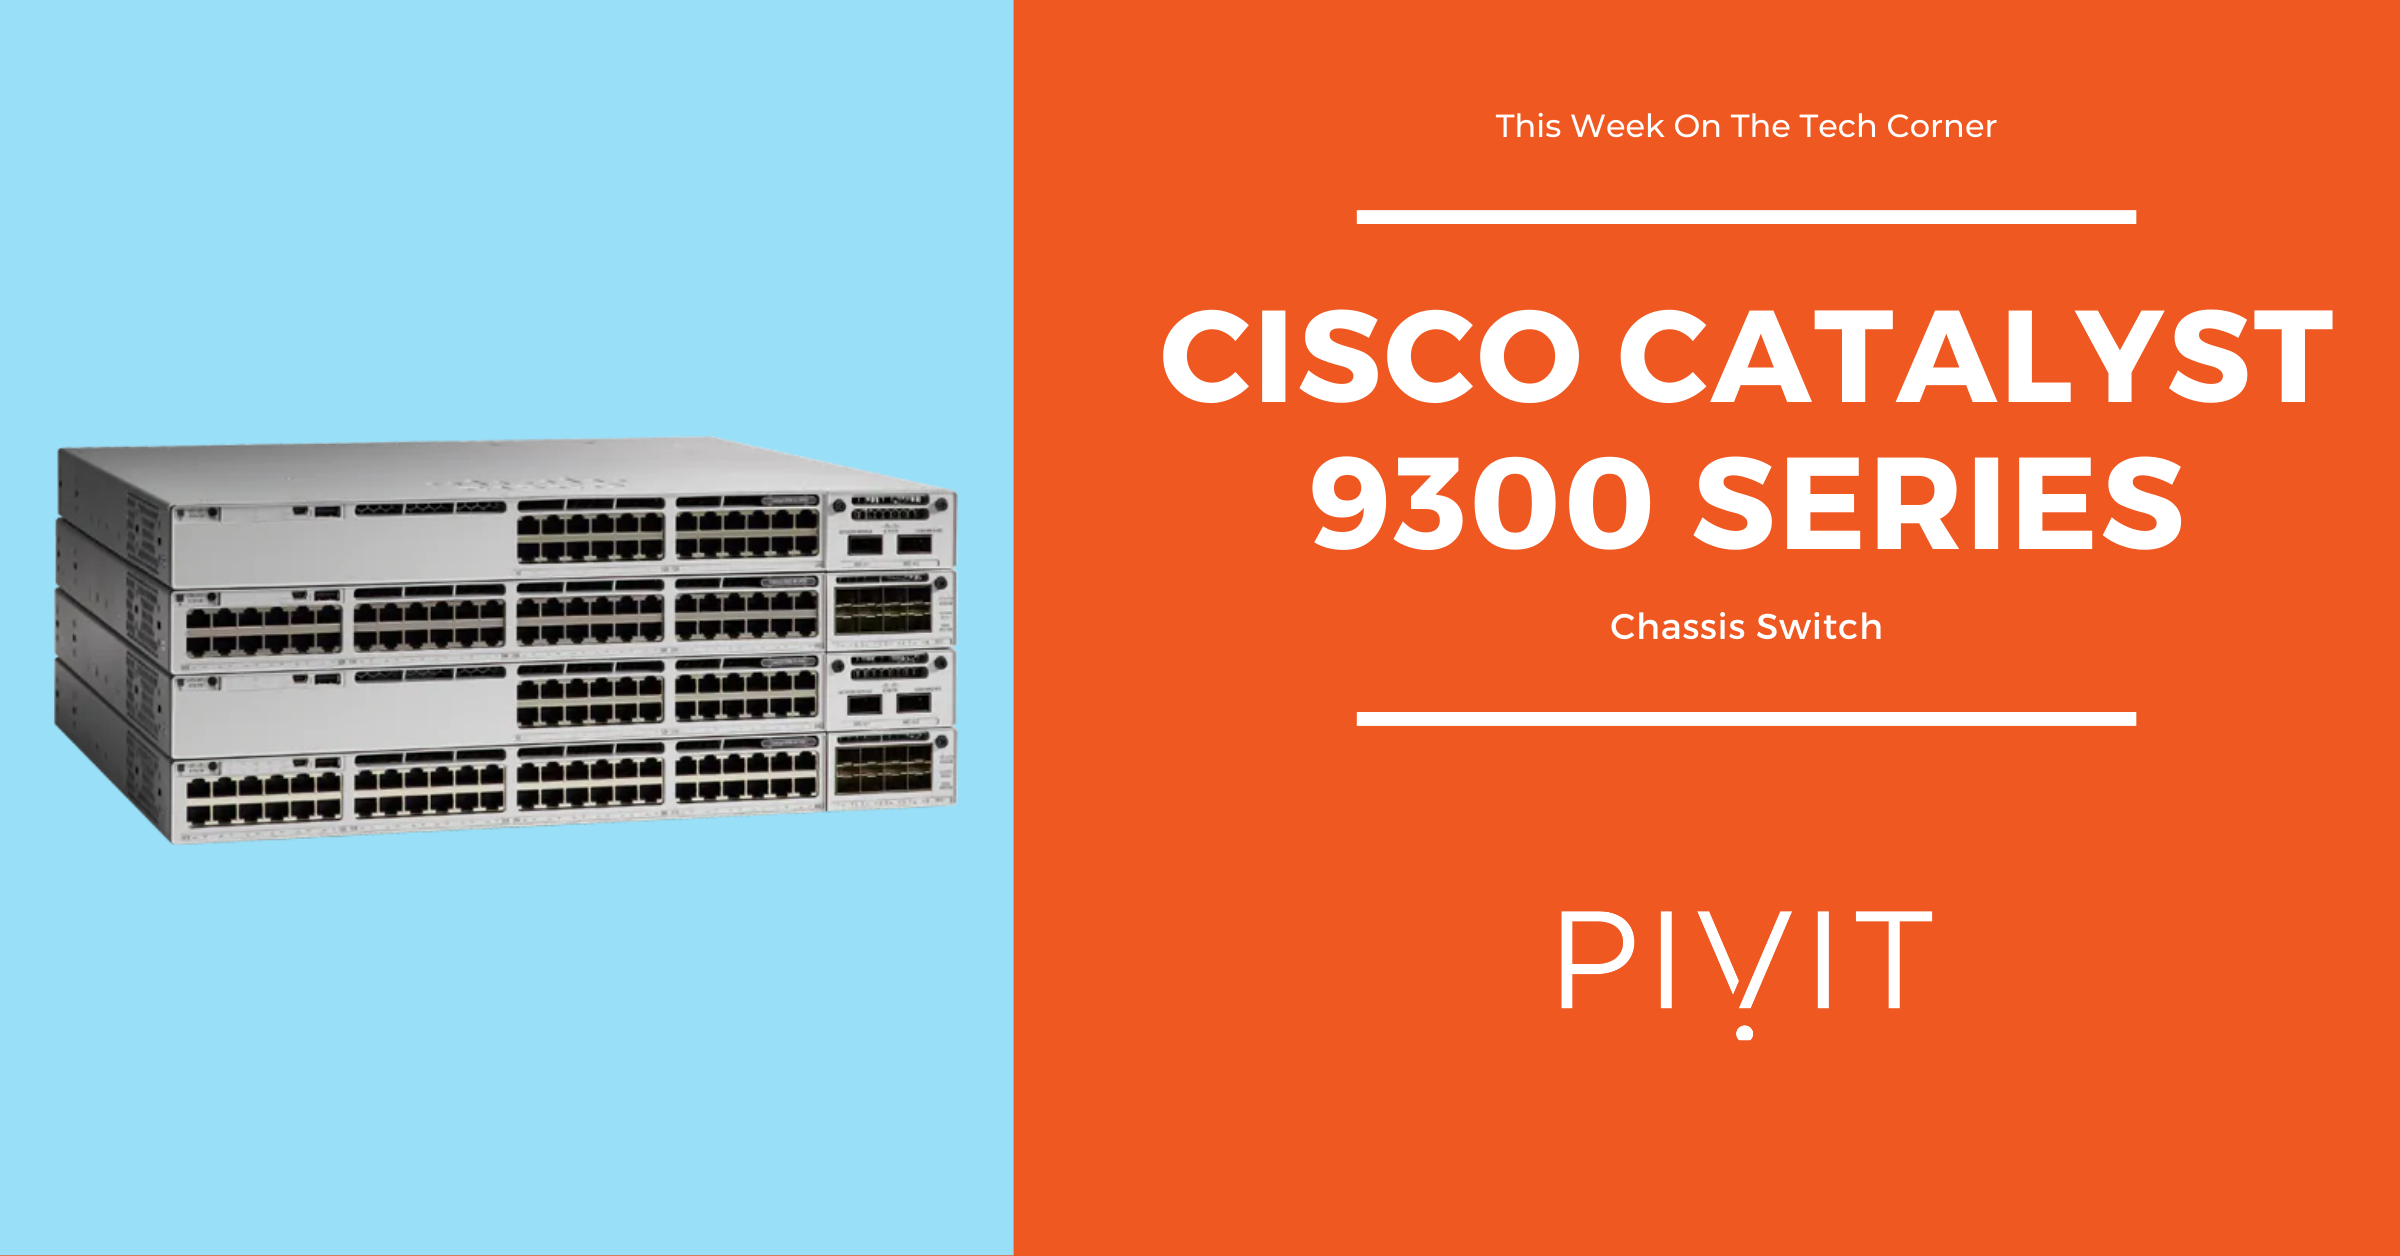 The Highly Scalable Cisco Catalyst 9300 Series Chassis Switch